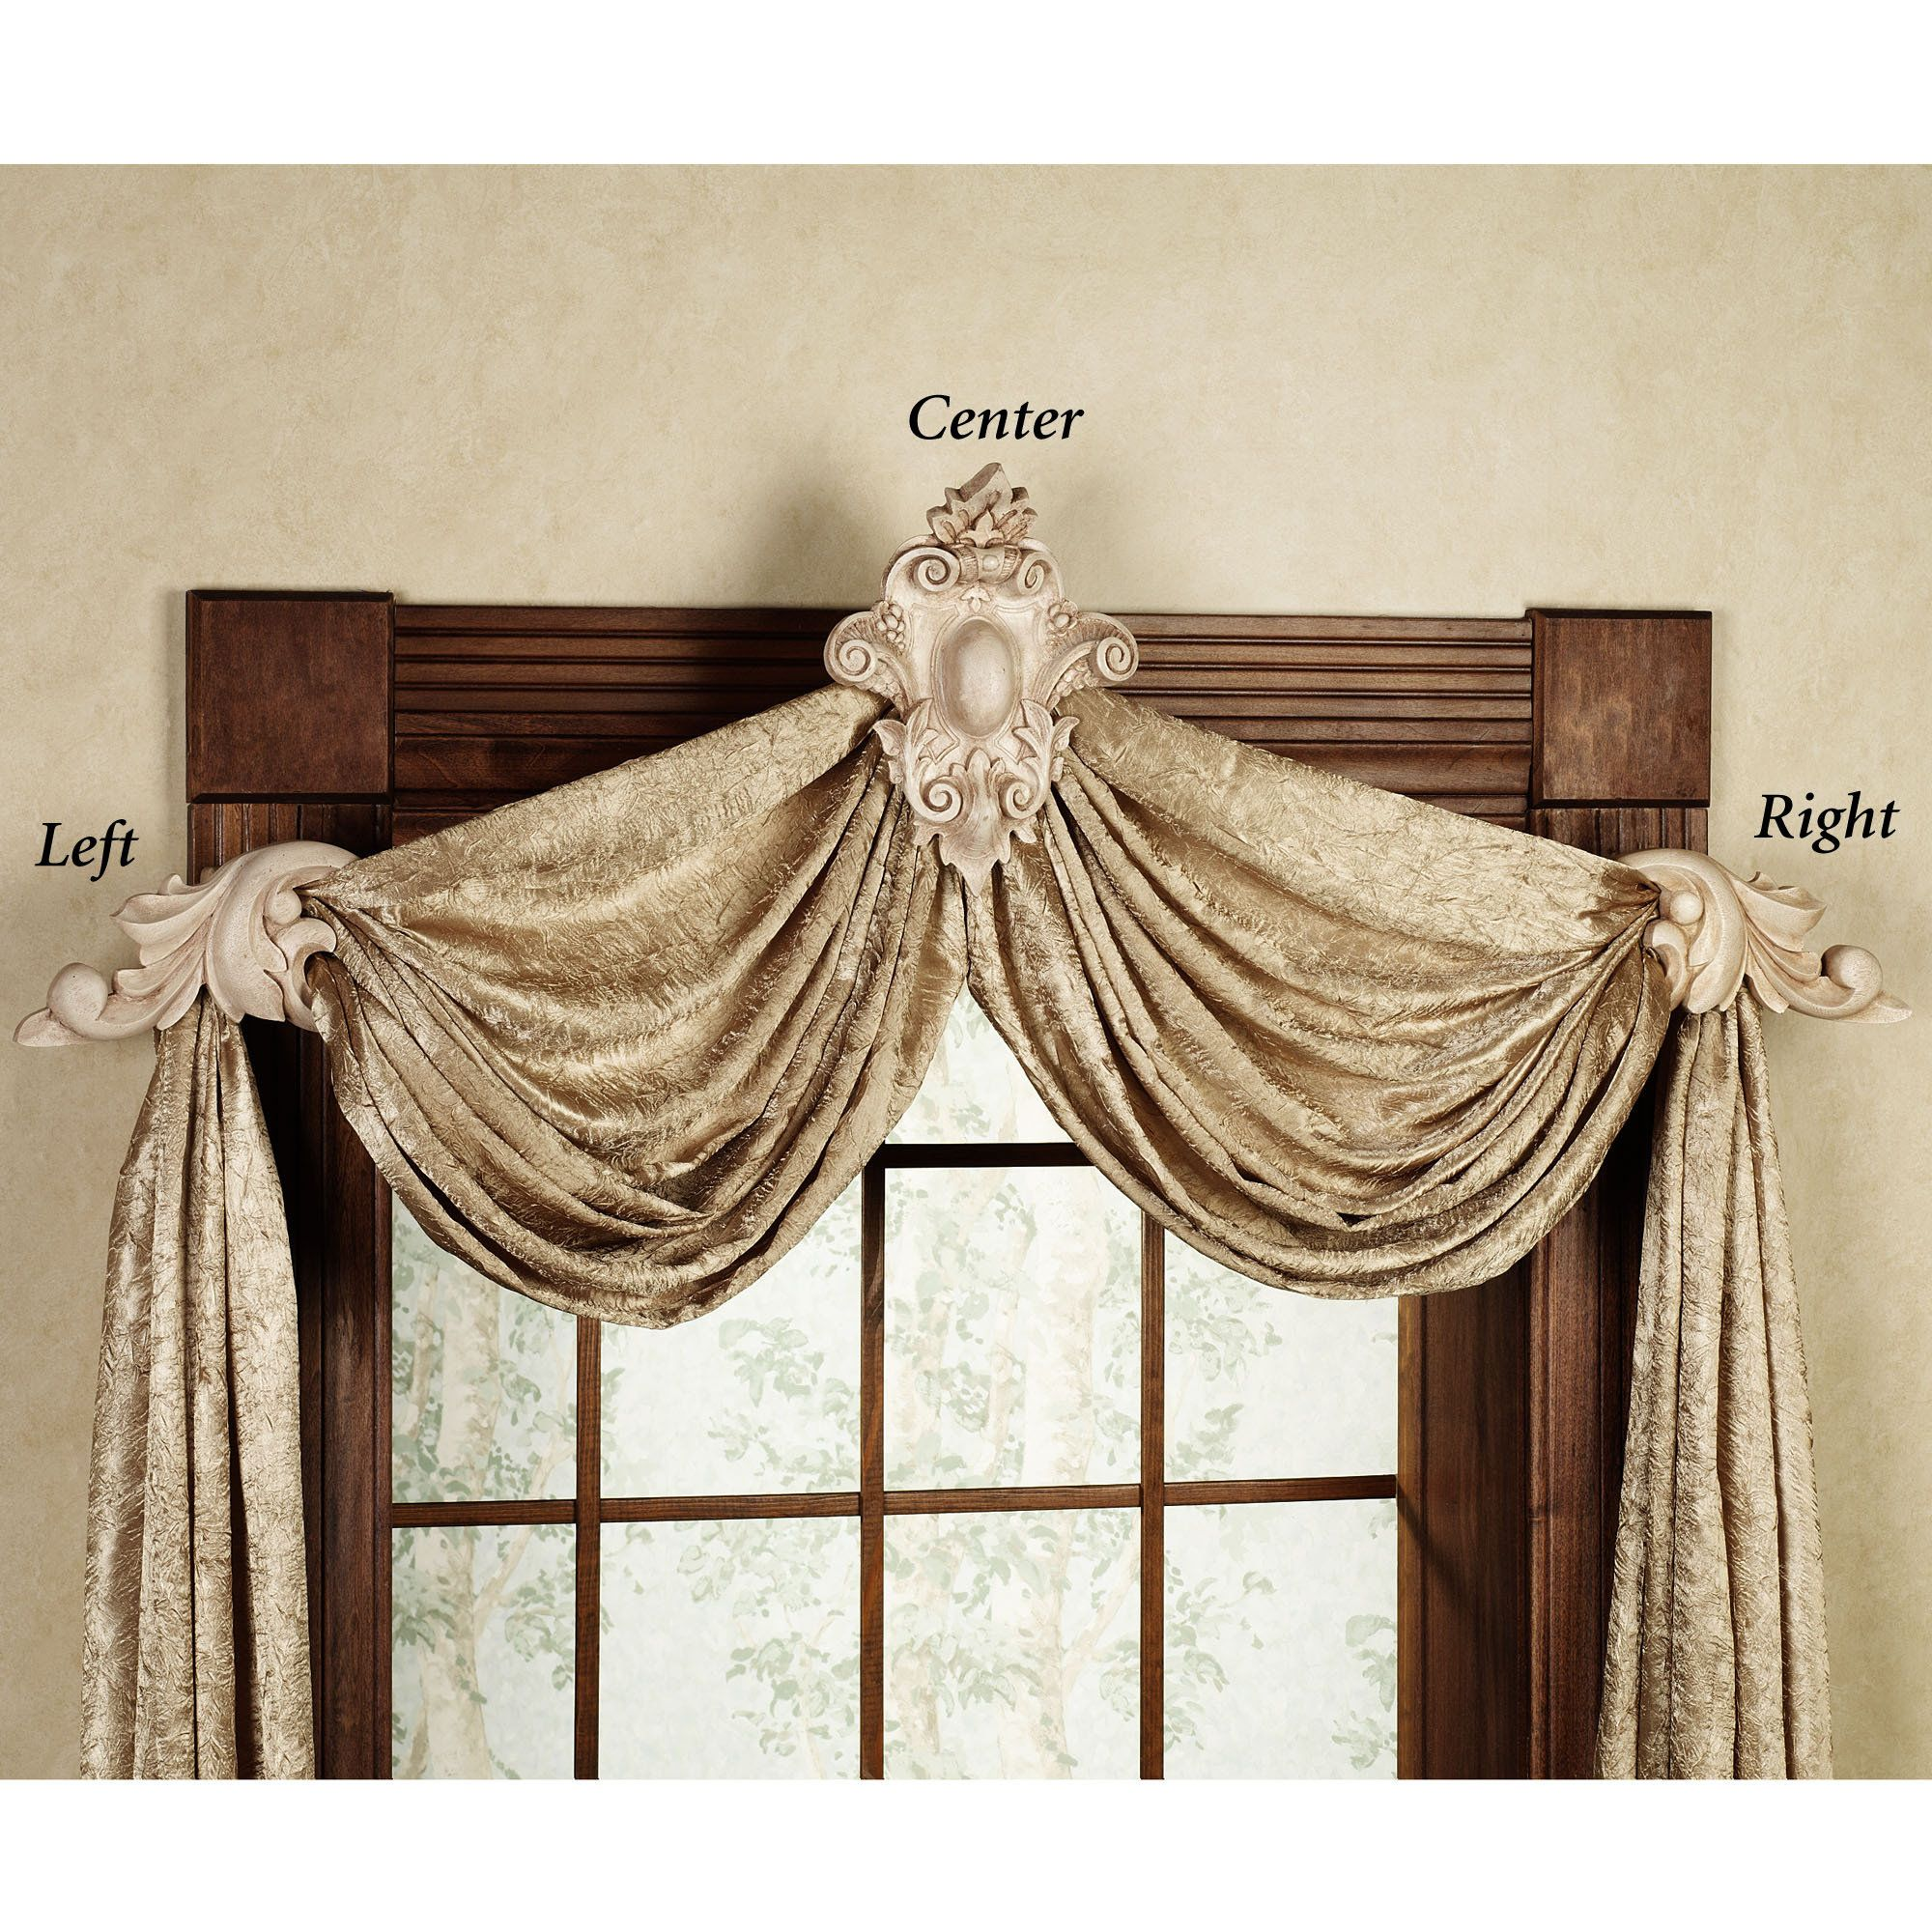 Decorative Window Curtain Sconces | Curtain Menzilperde.Net